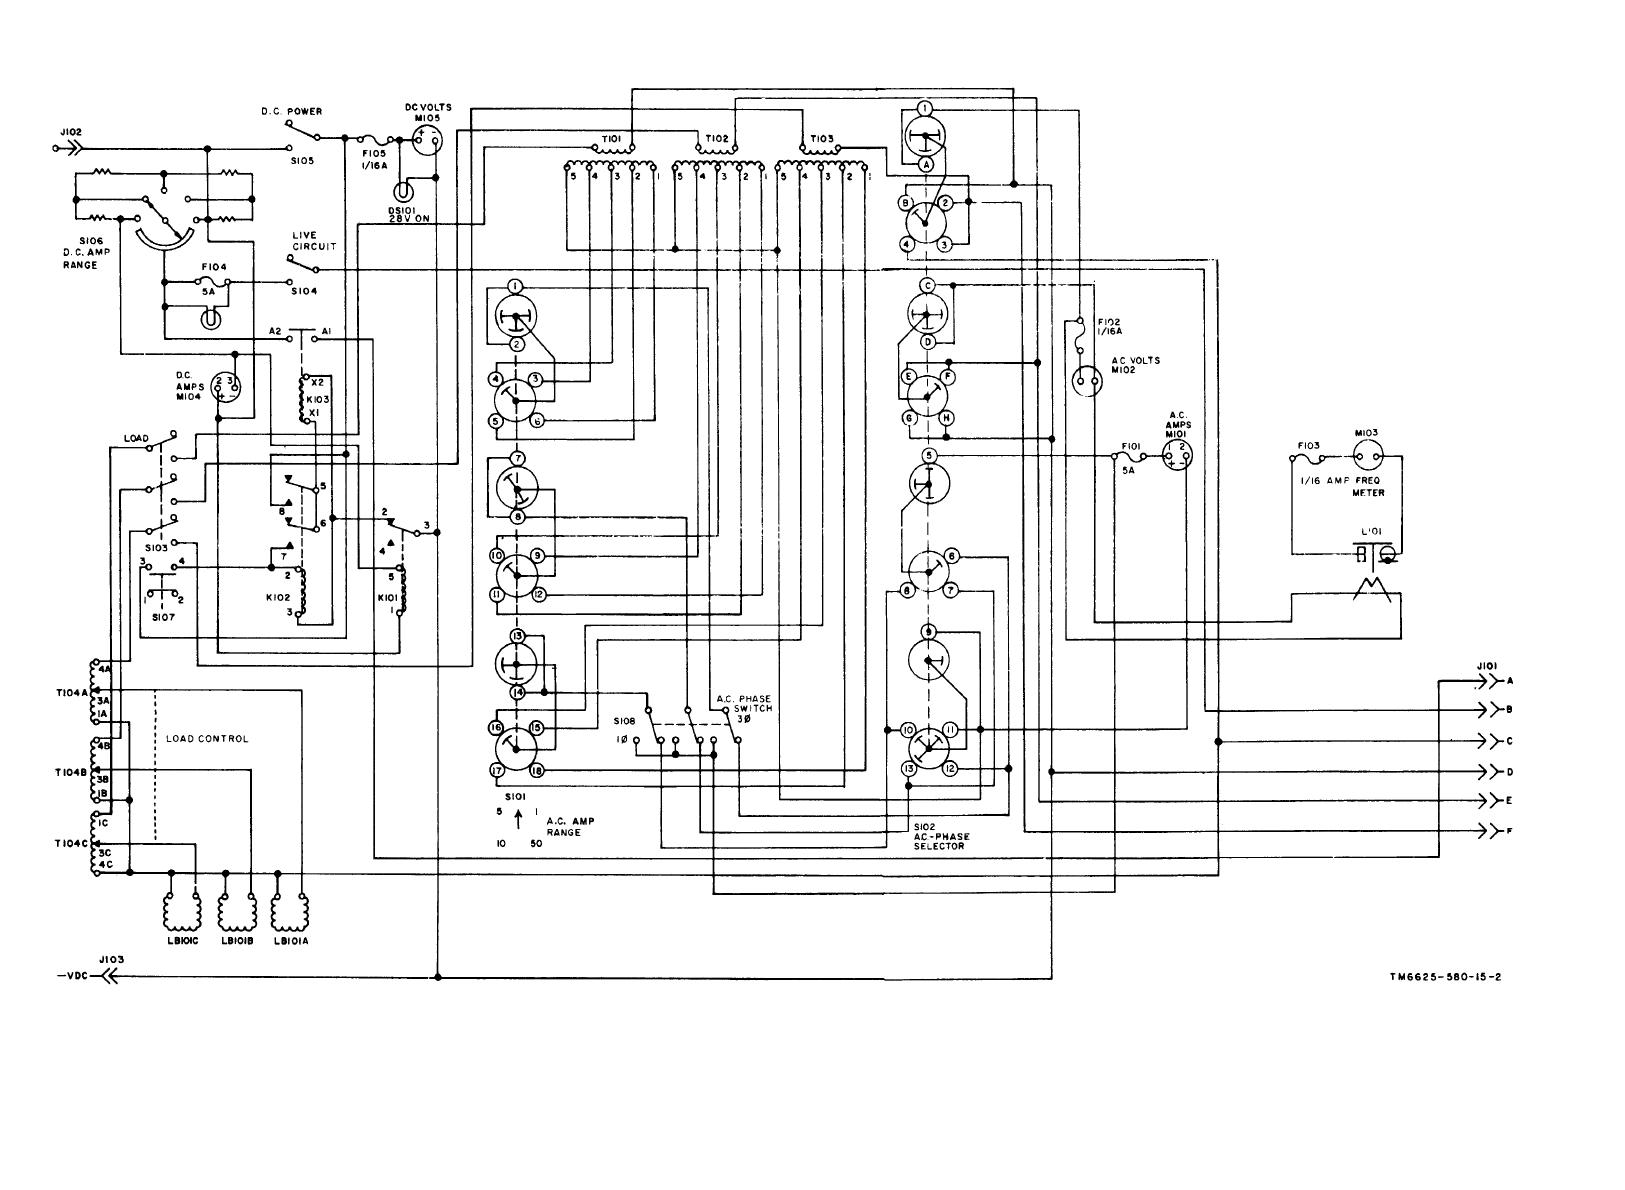 Aircraft Wiring Harness Drawing : Aircraft wiring diagram